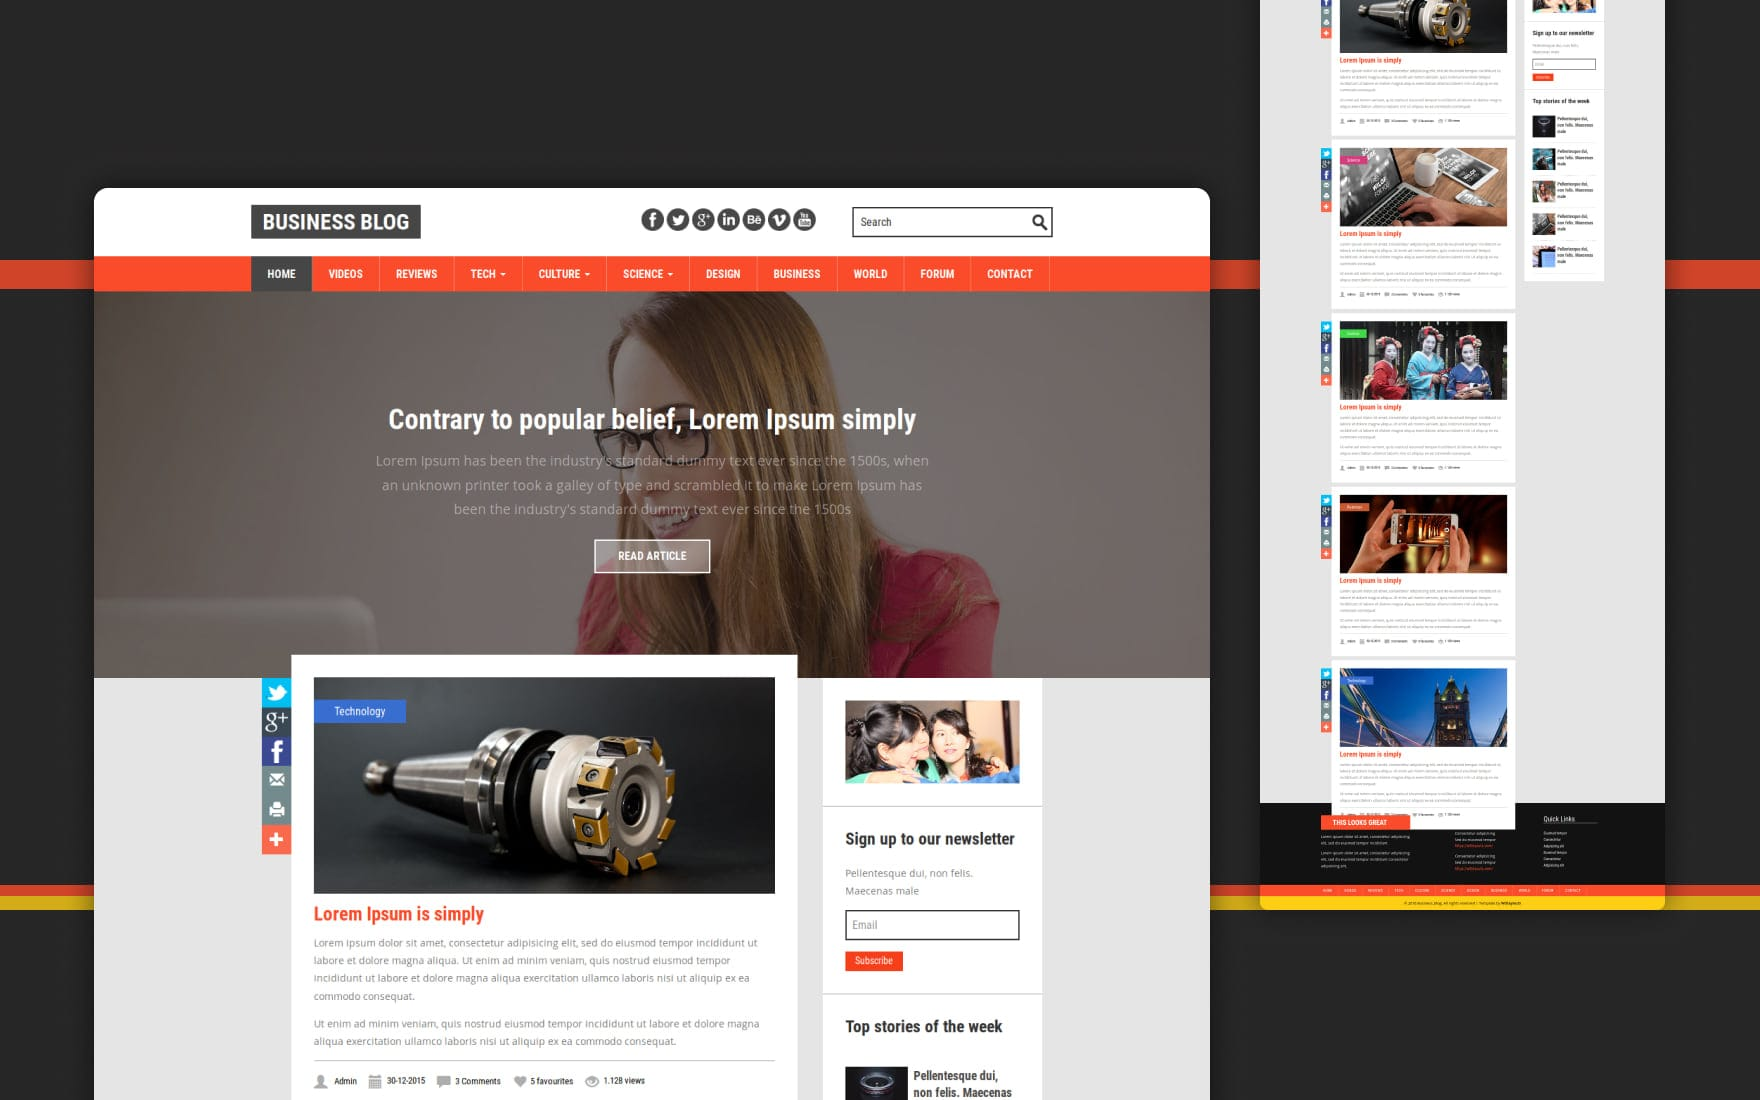 business-blog-website-templates-w3layouts